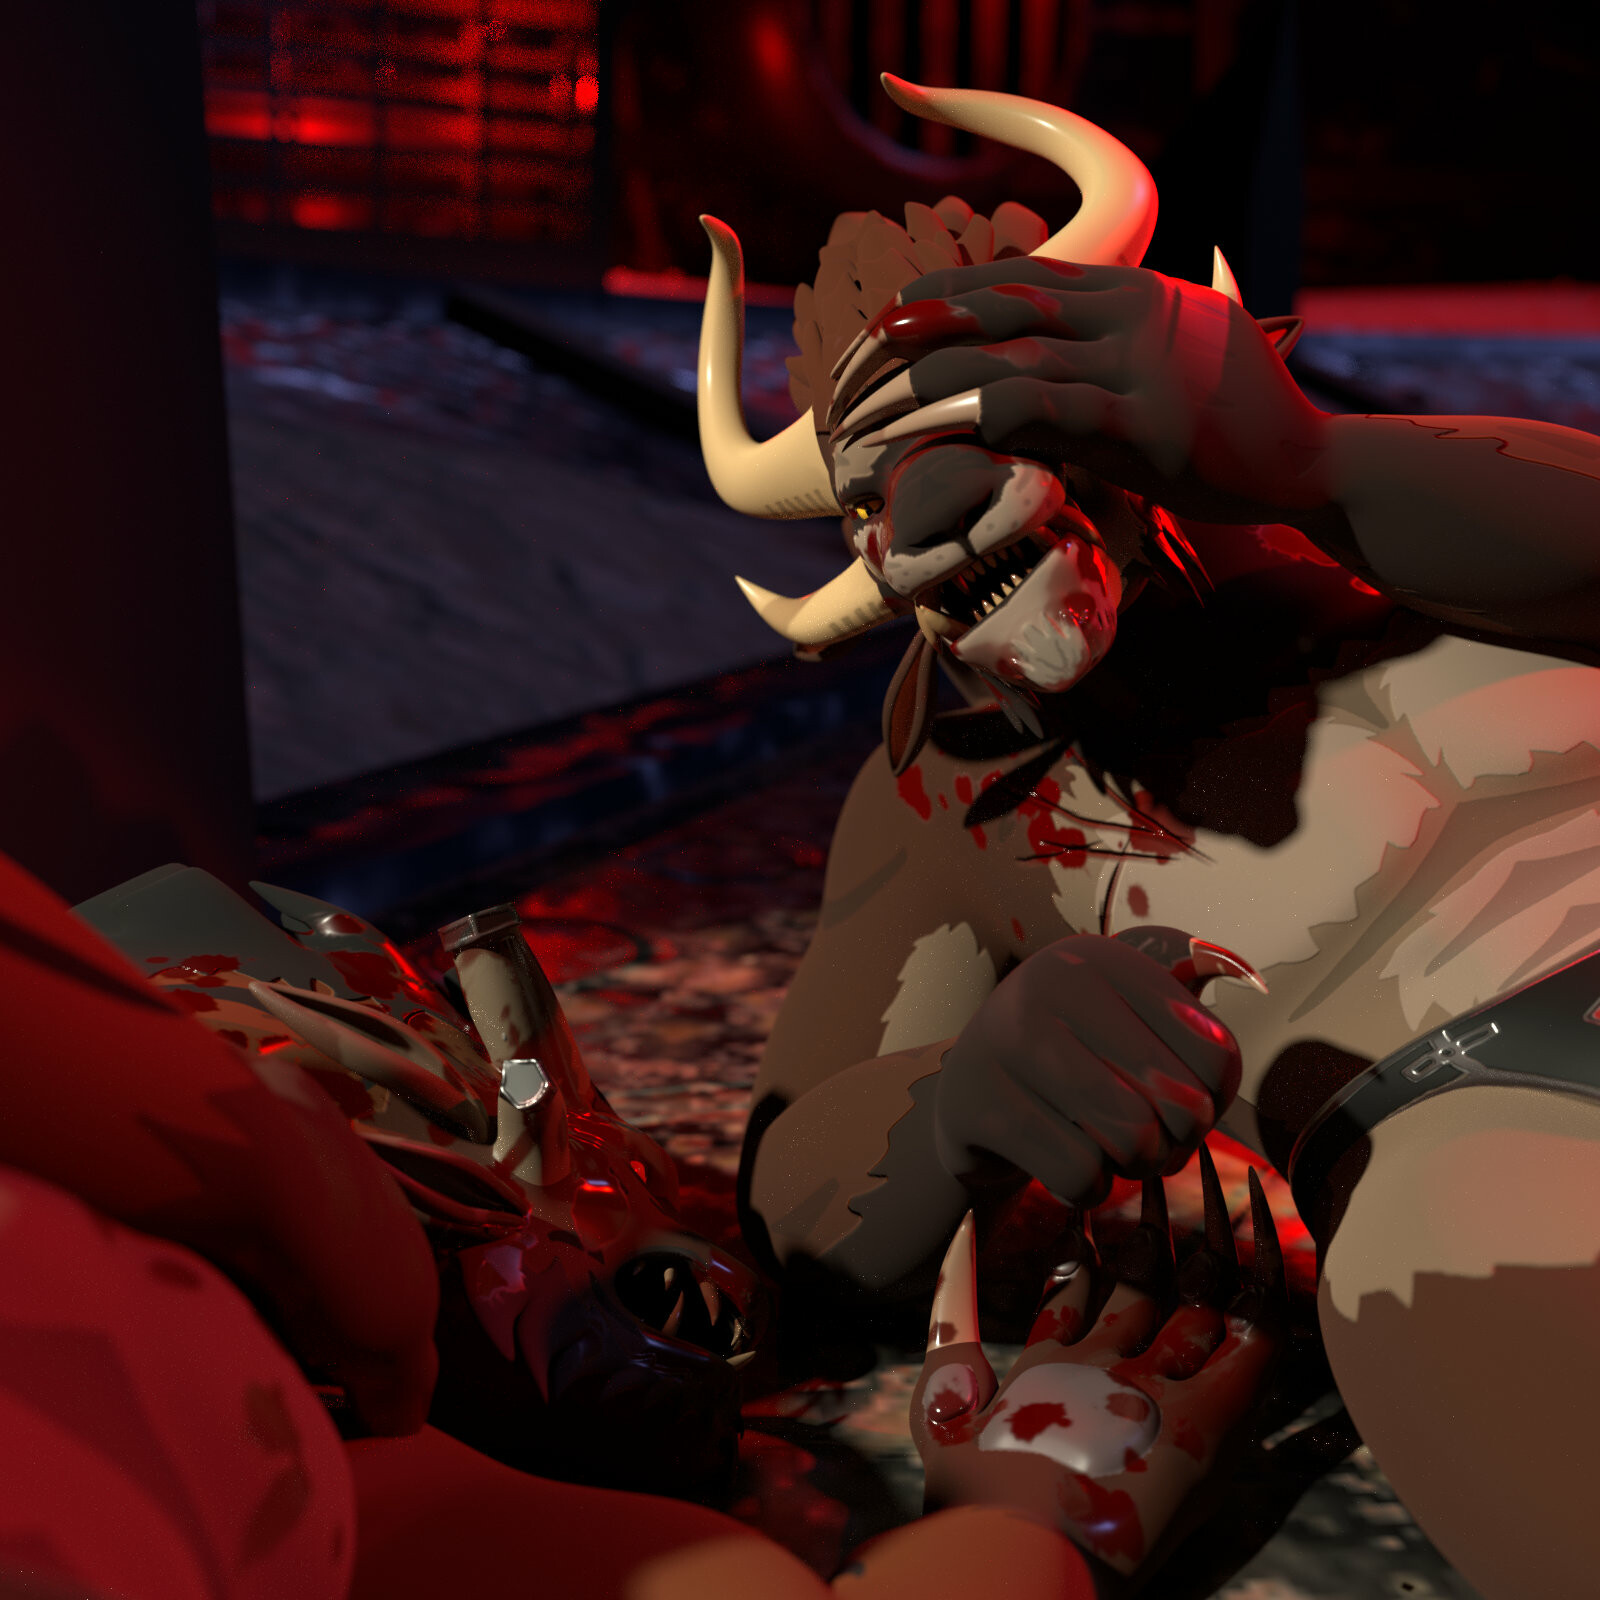 Mature version with blood